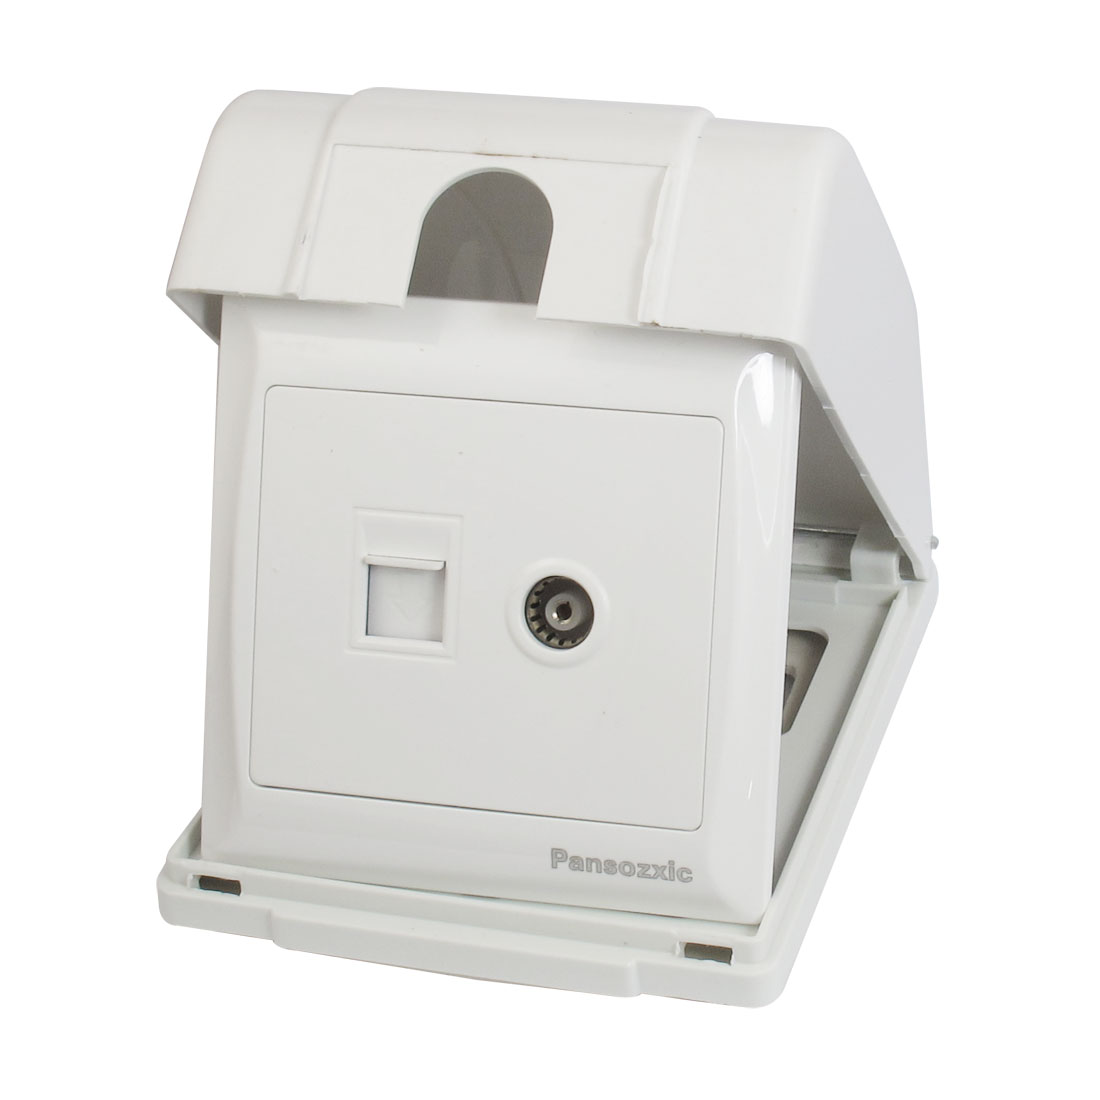 RJ11 TV Telephone Television Network Wall Outlet Plate w Splash Proof Box